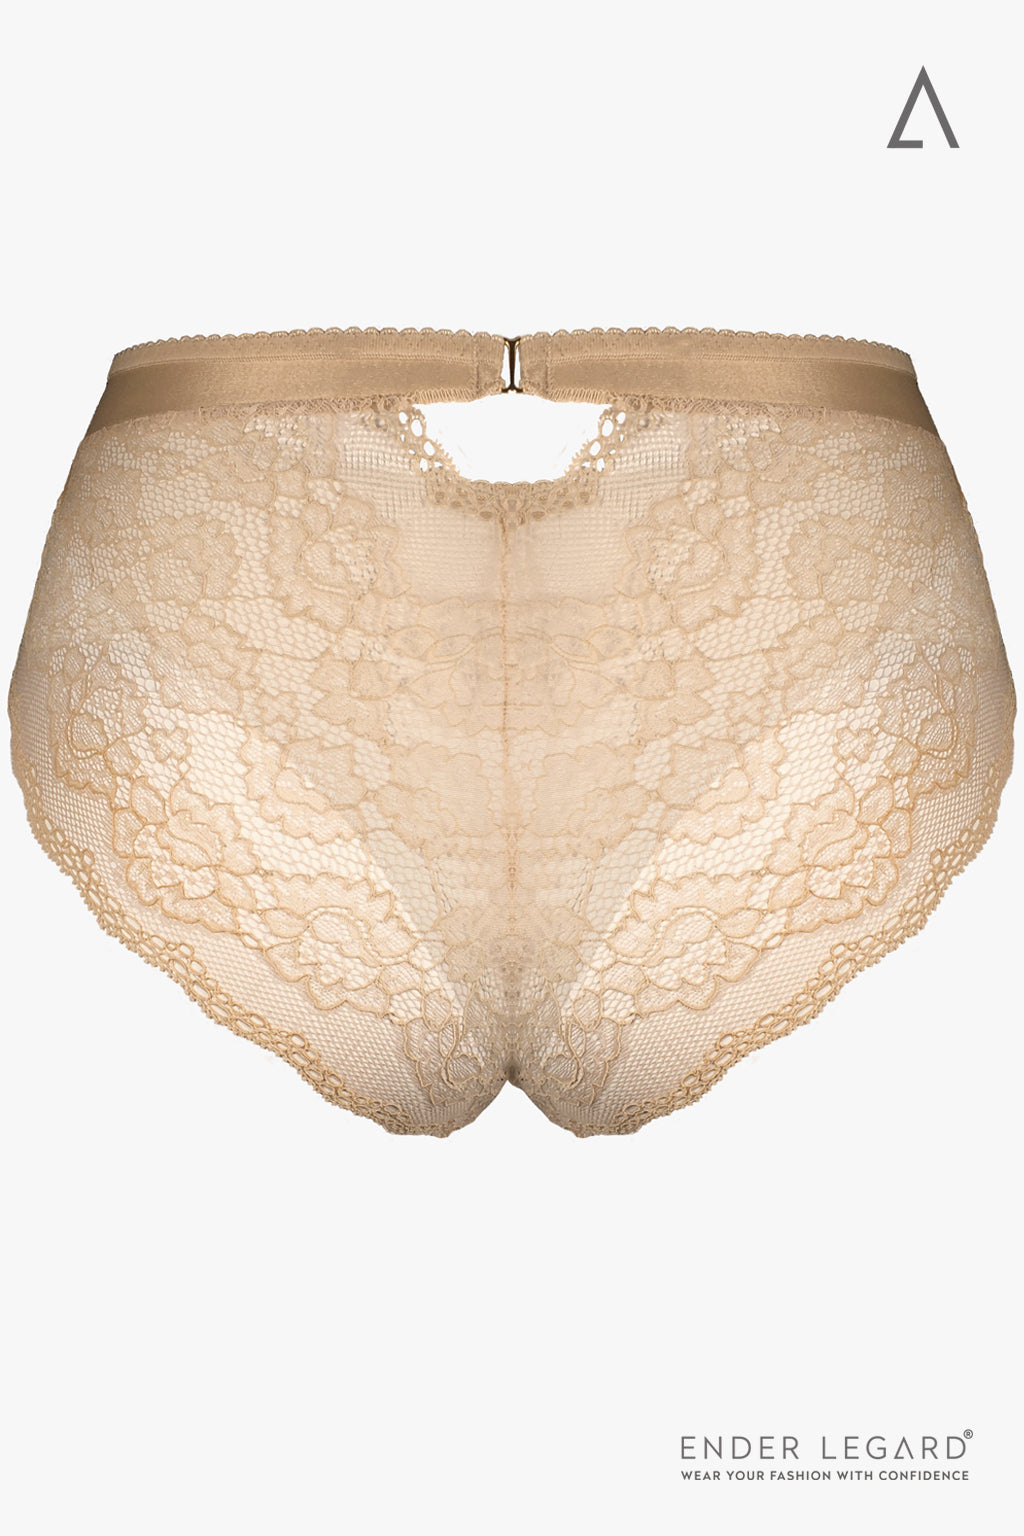 Lace panties briefs for beige bodysuit shaper | ENDER LEGARD